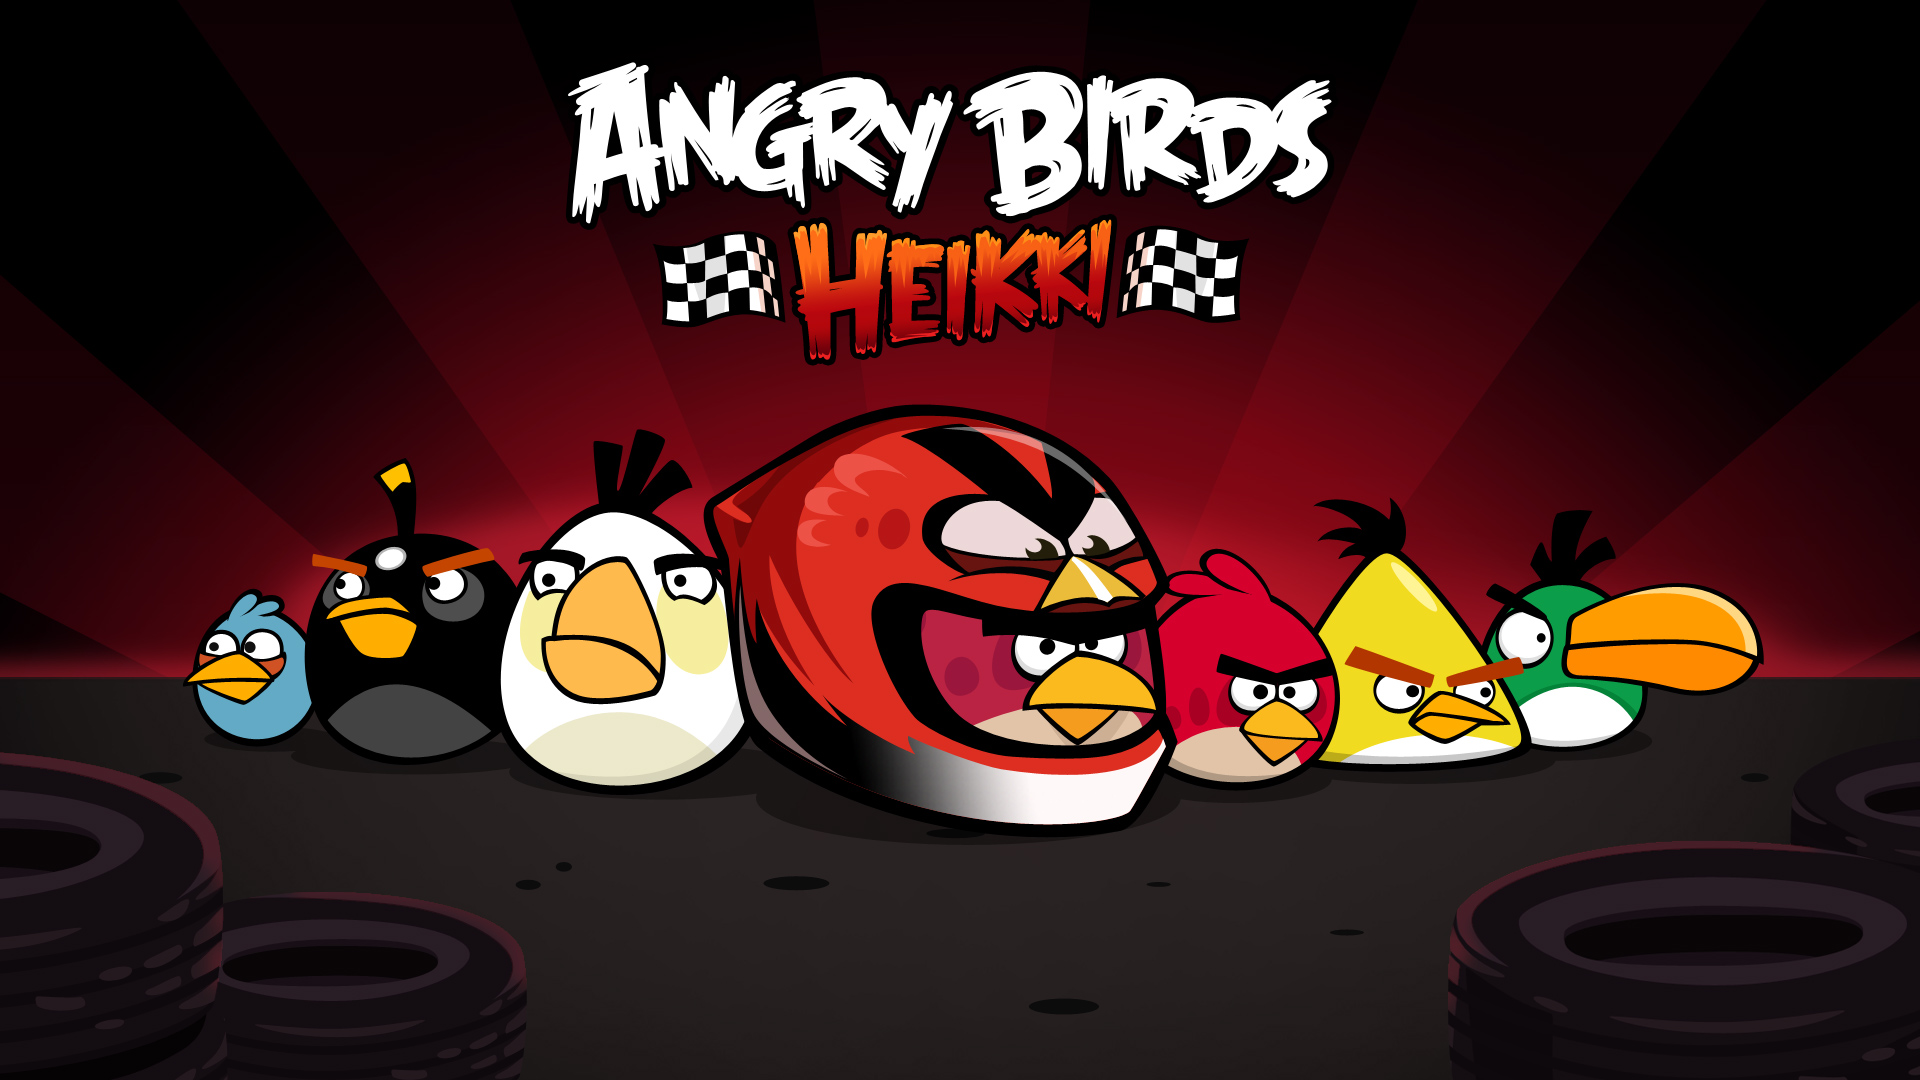 angry birds images angry birds heikki hd wallpaper and background